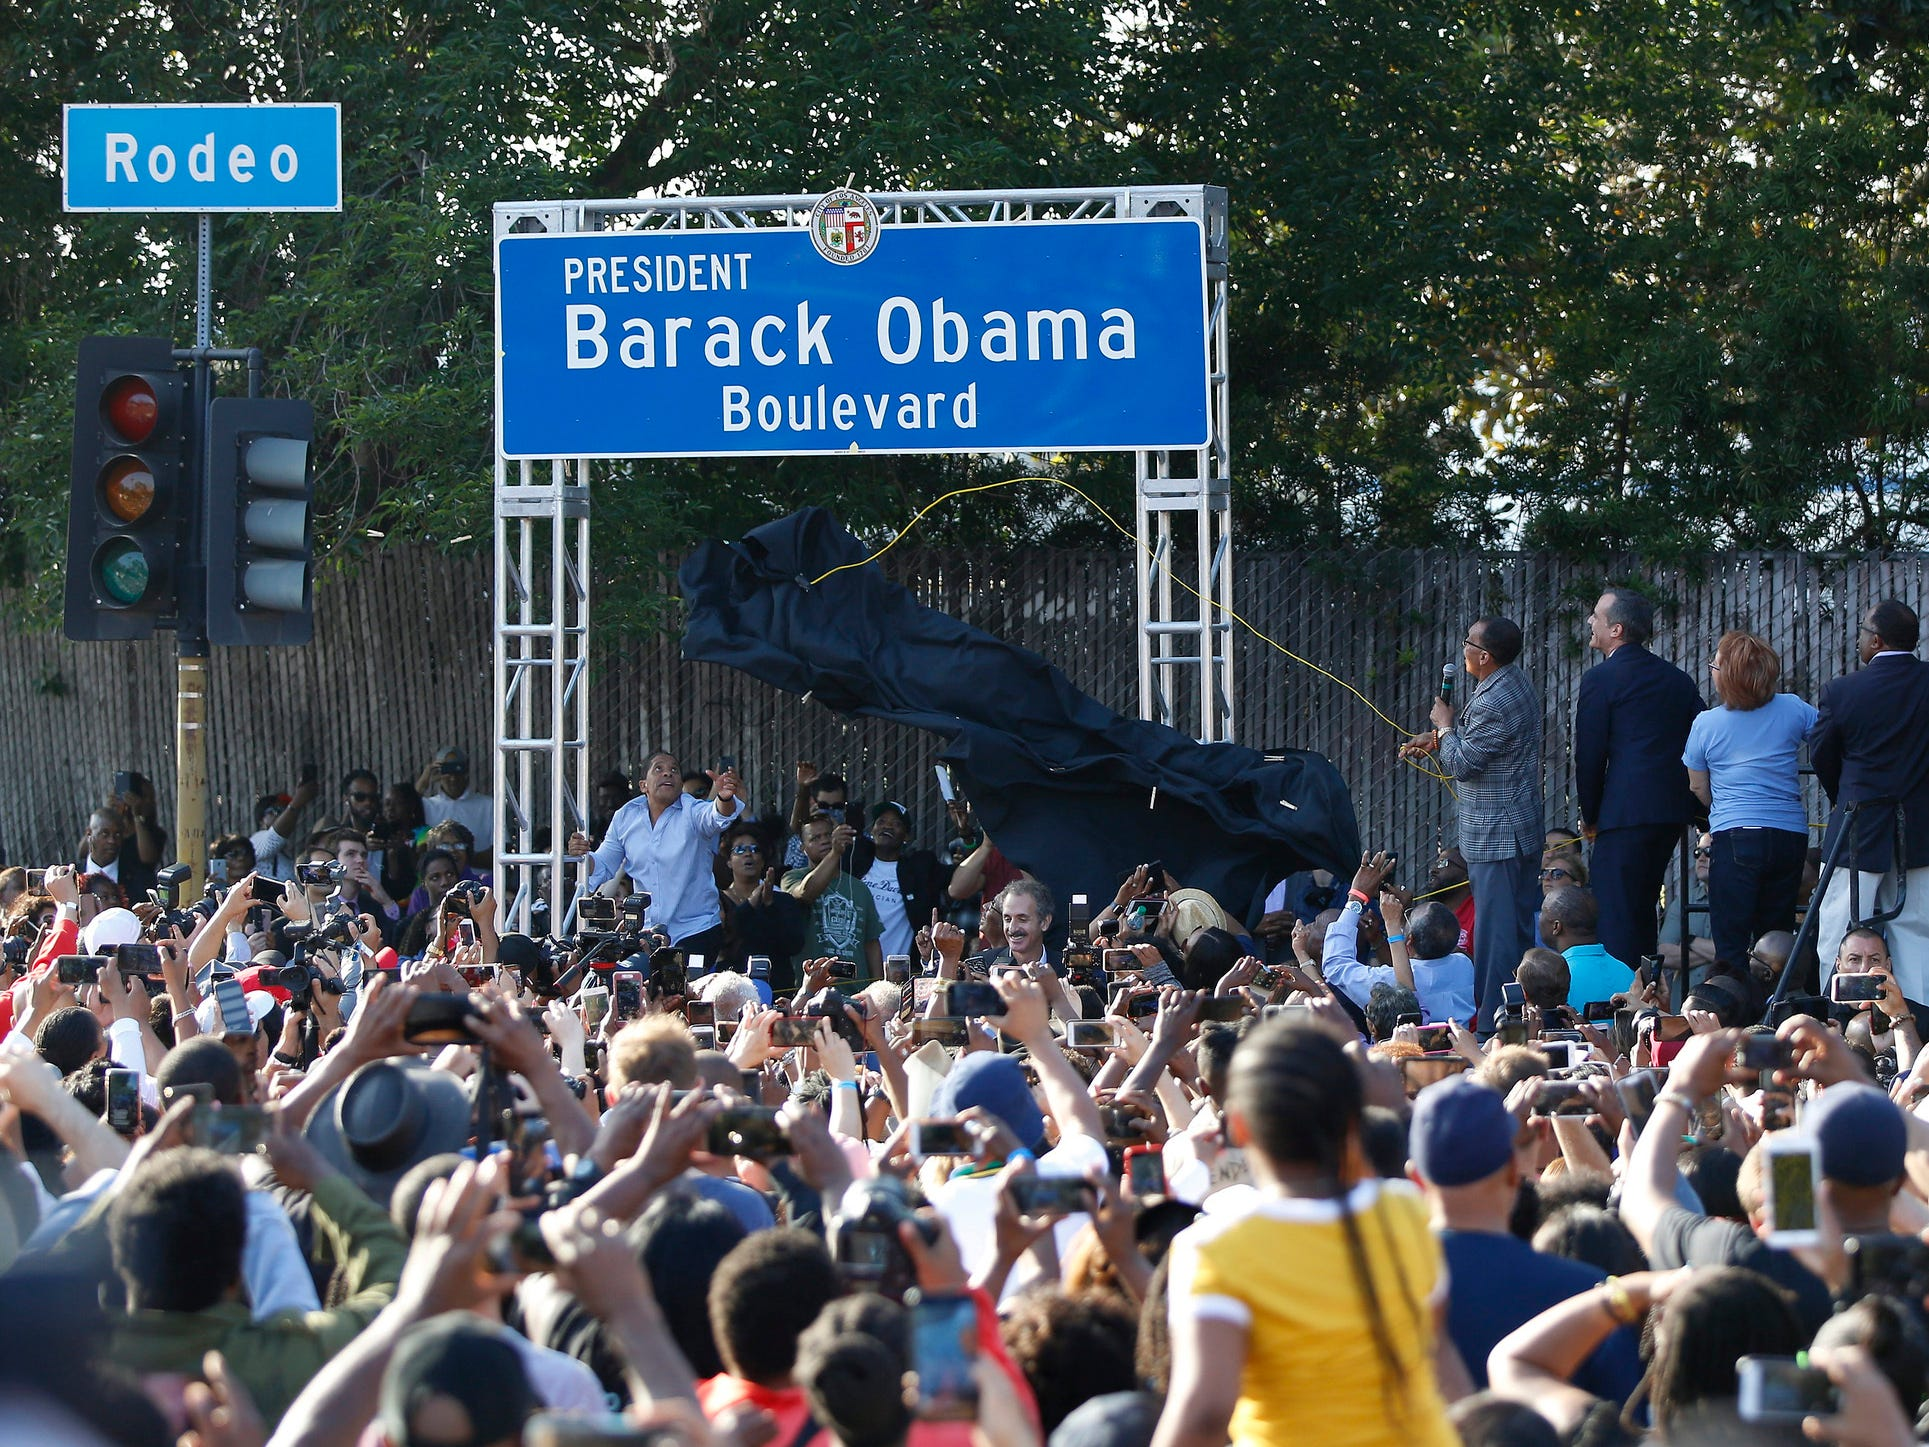 Los Angeles renames Rodeo Rd. for former President Barack Obama